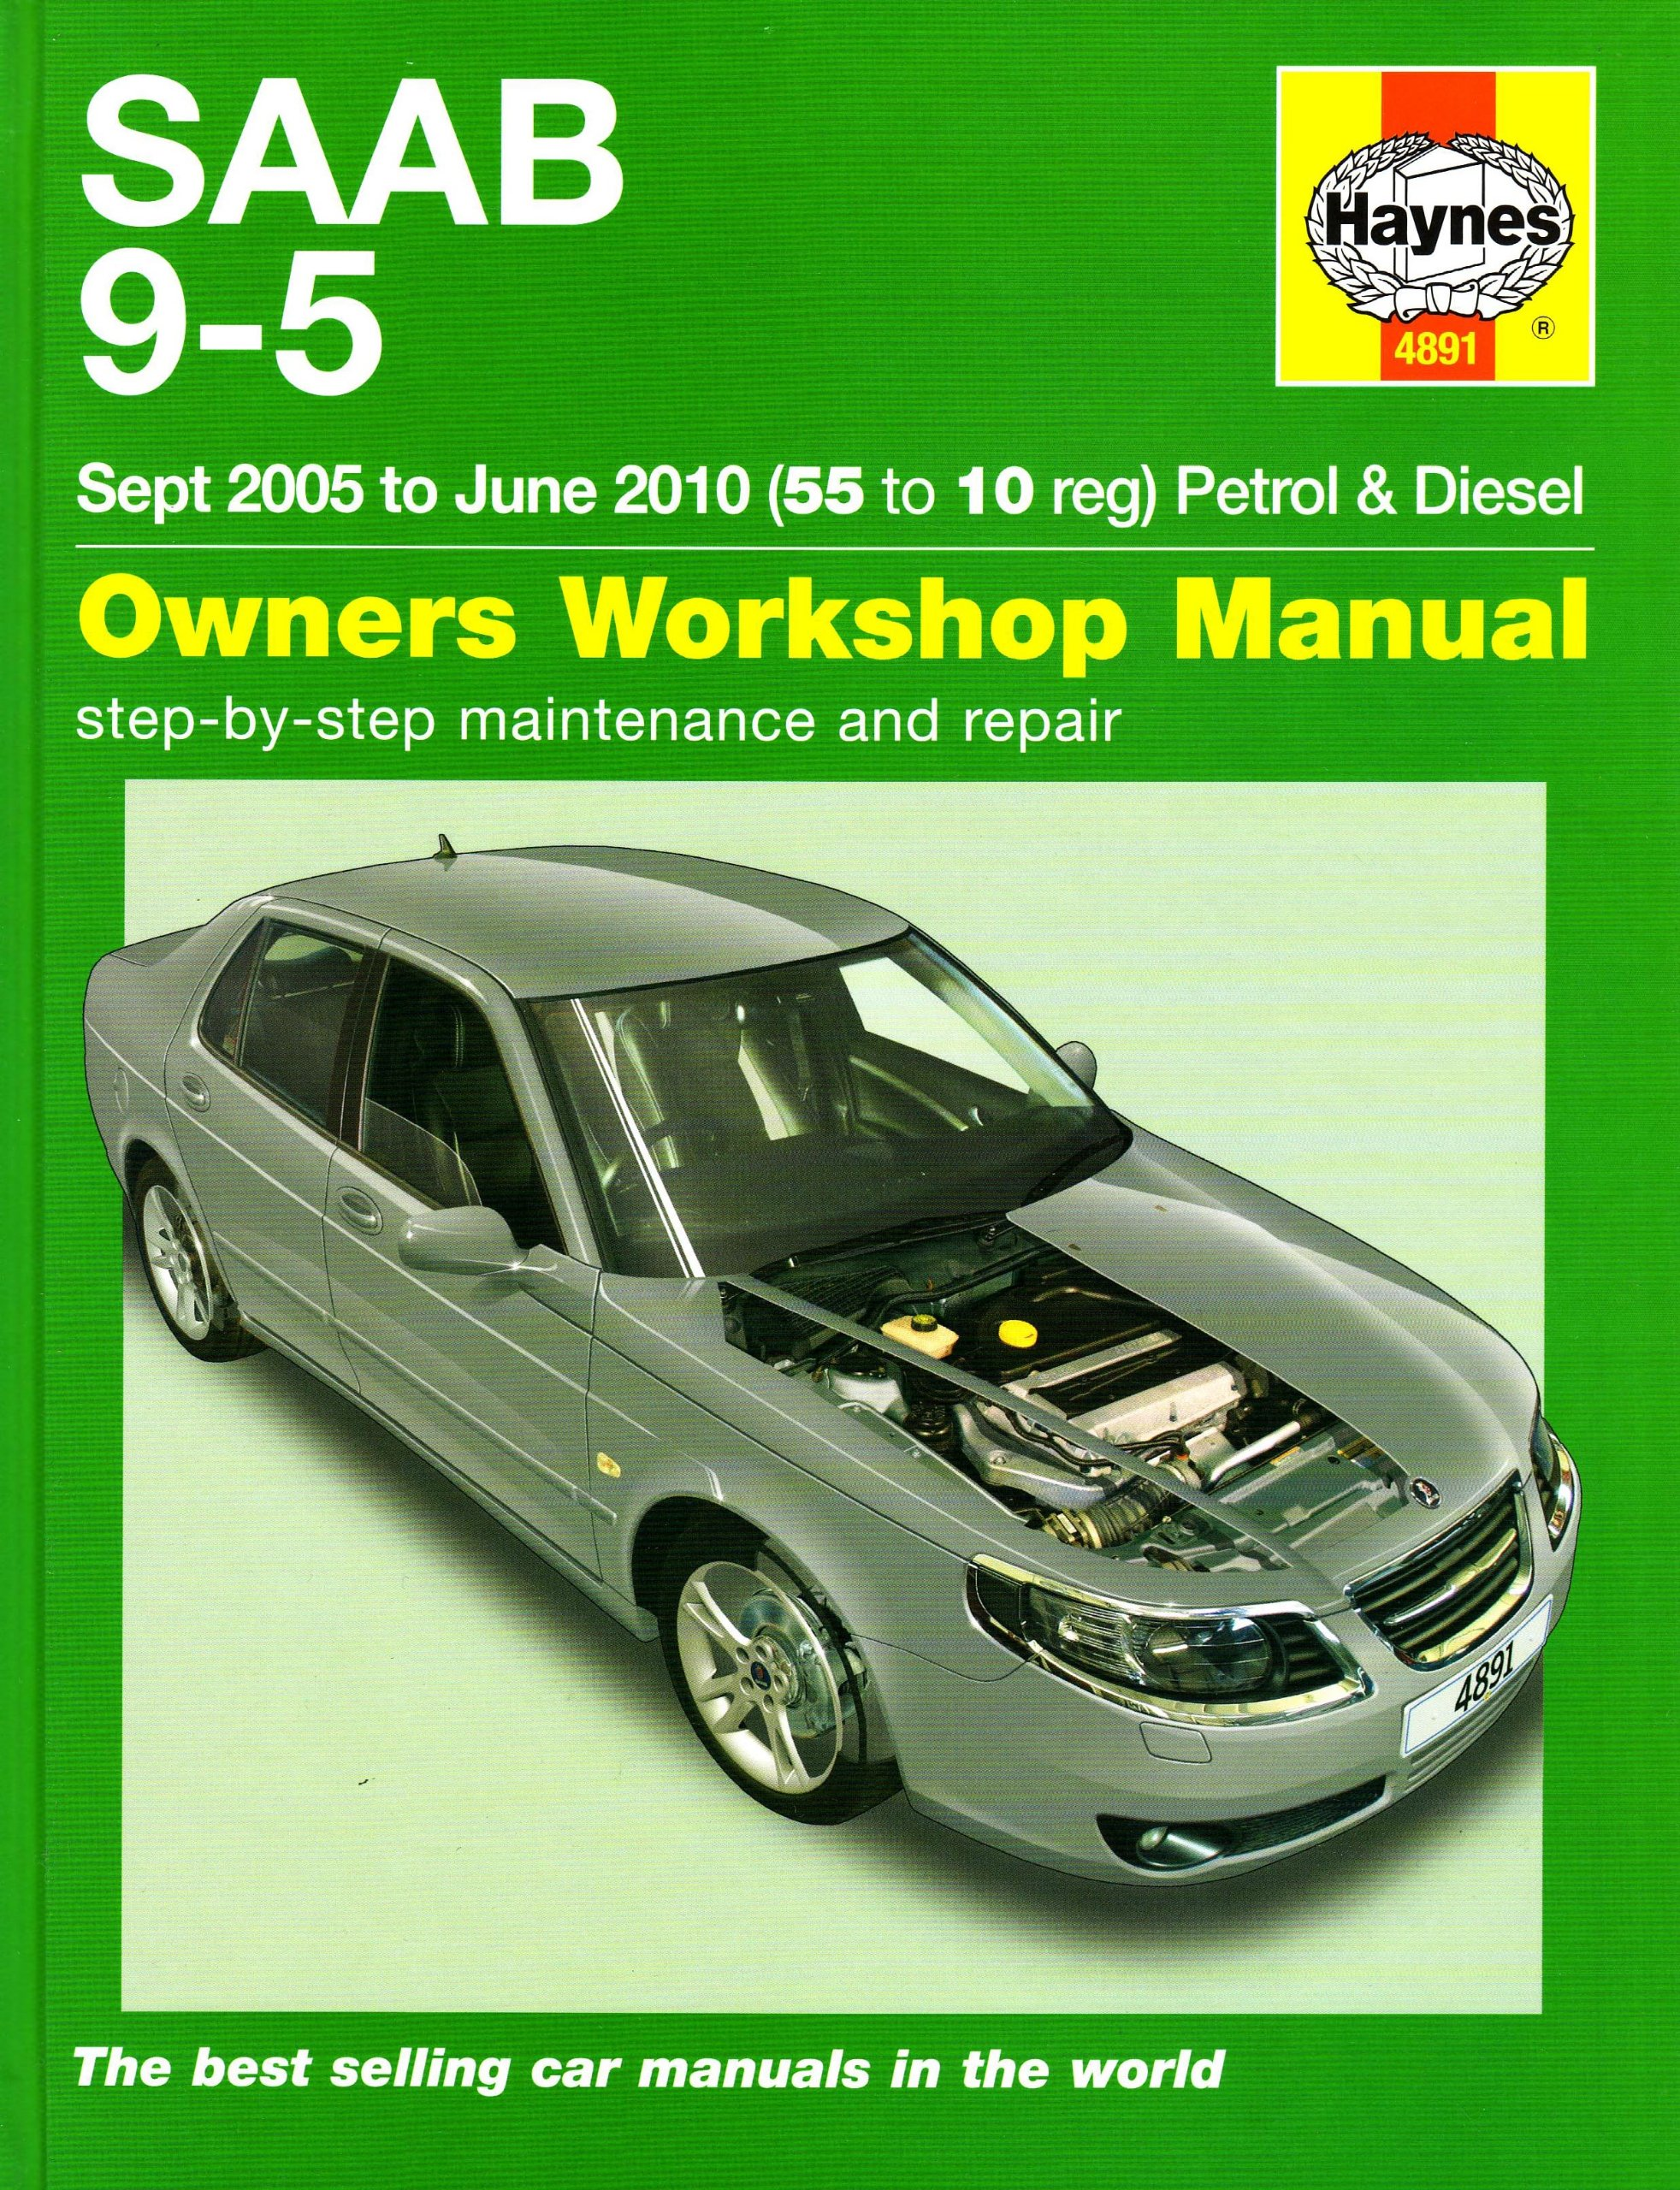 Saab 9-5 Petrol & Diesel Service and Repair Manual (Haynes Manual, Sept.  2005 to June 2010): Peter T. Gill: 5054001177242: Amazon.com: Books